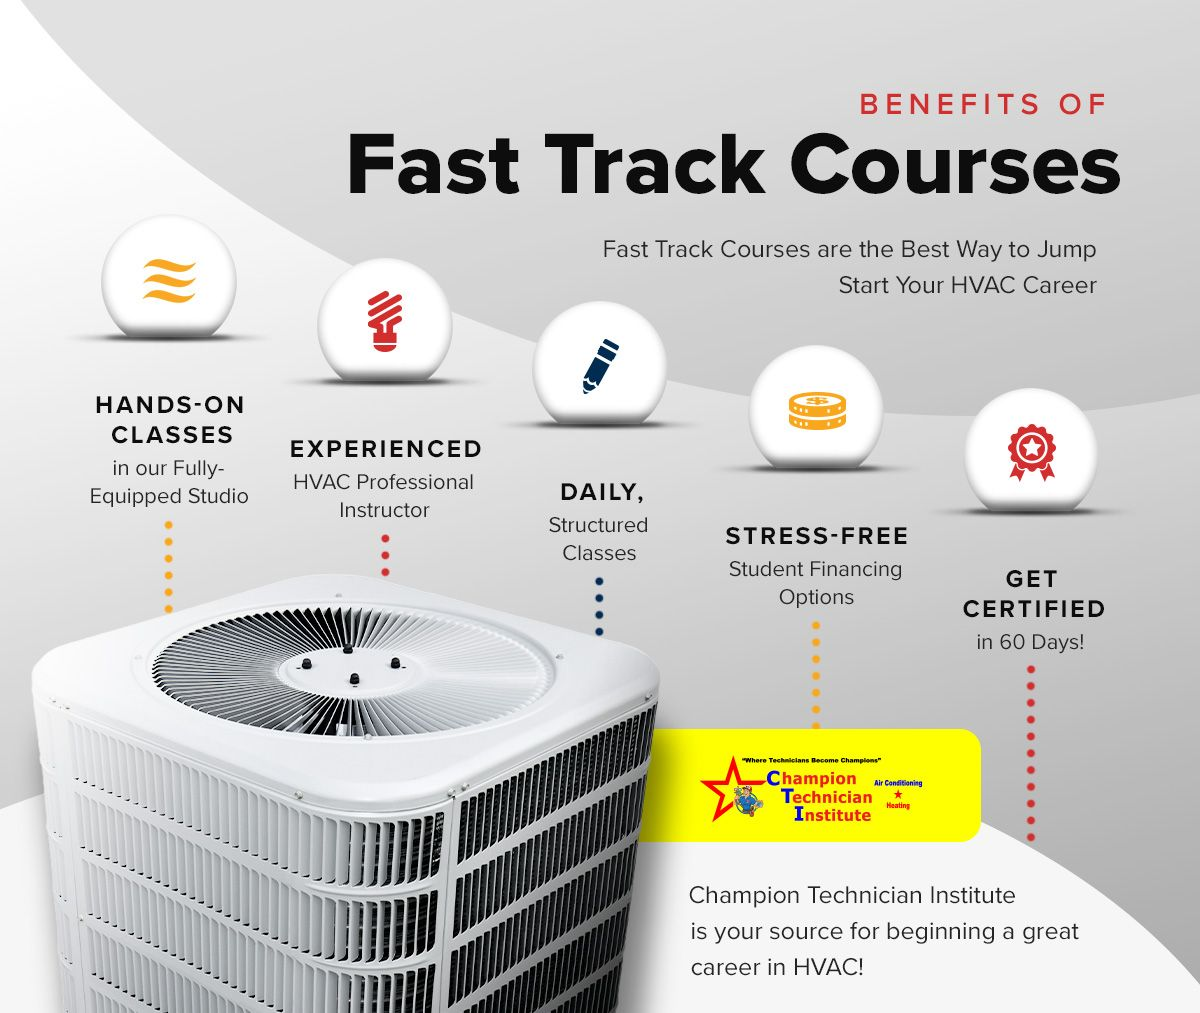 Benefits of Fast Track Courses_Infographic.jpg